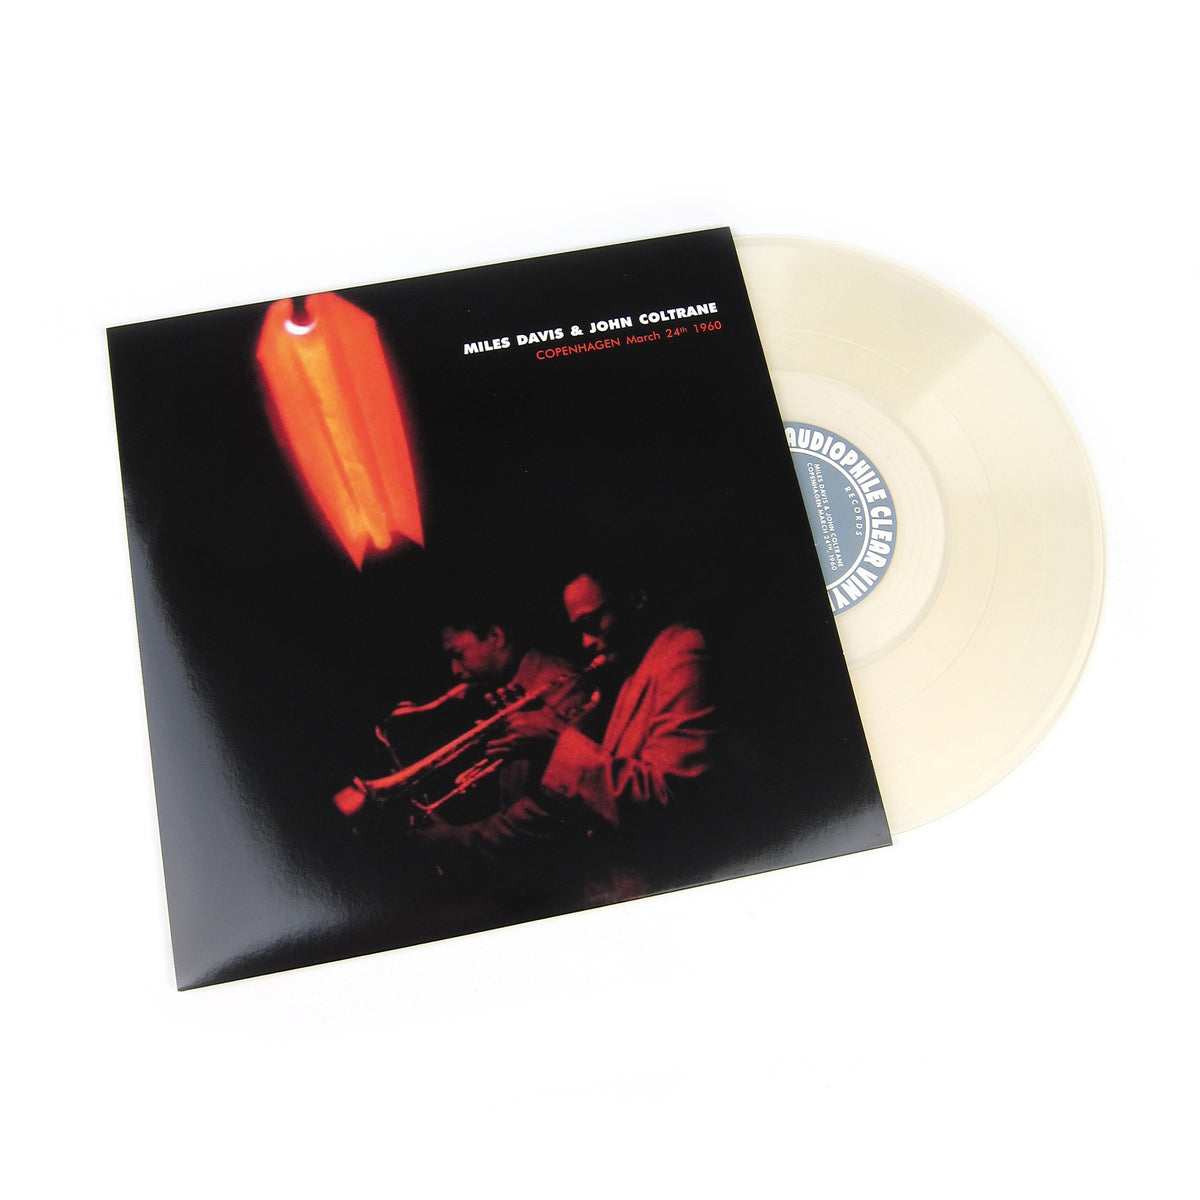 Miles Davis & John Coltrane: Copenhagen March 24th 1960 (Audiophile Clear Vinyl) ACV Vinyl LP